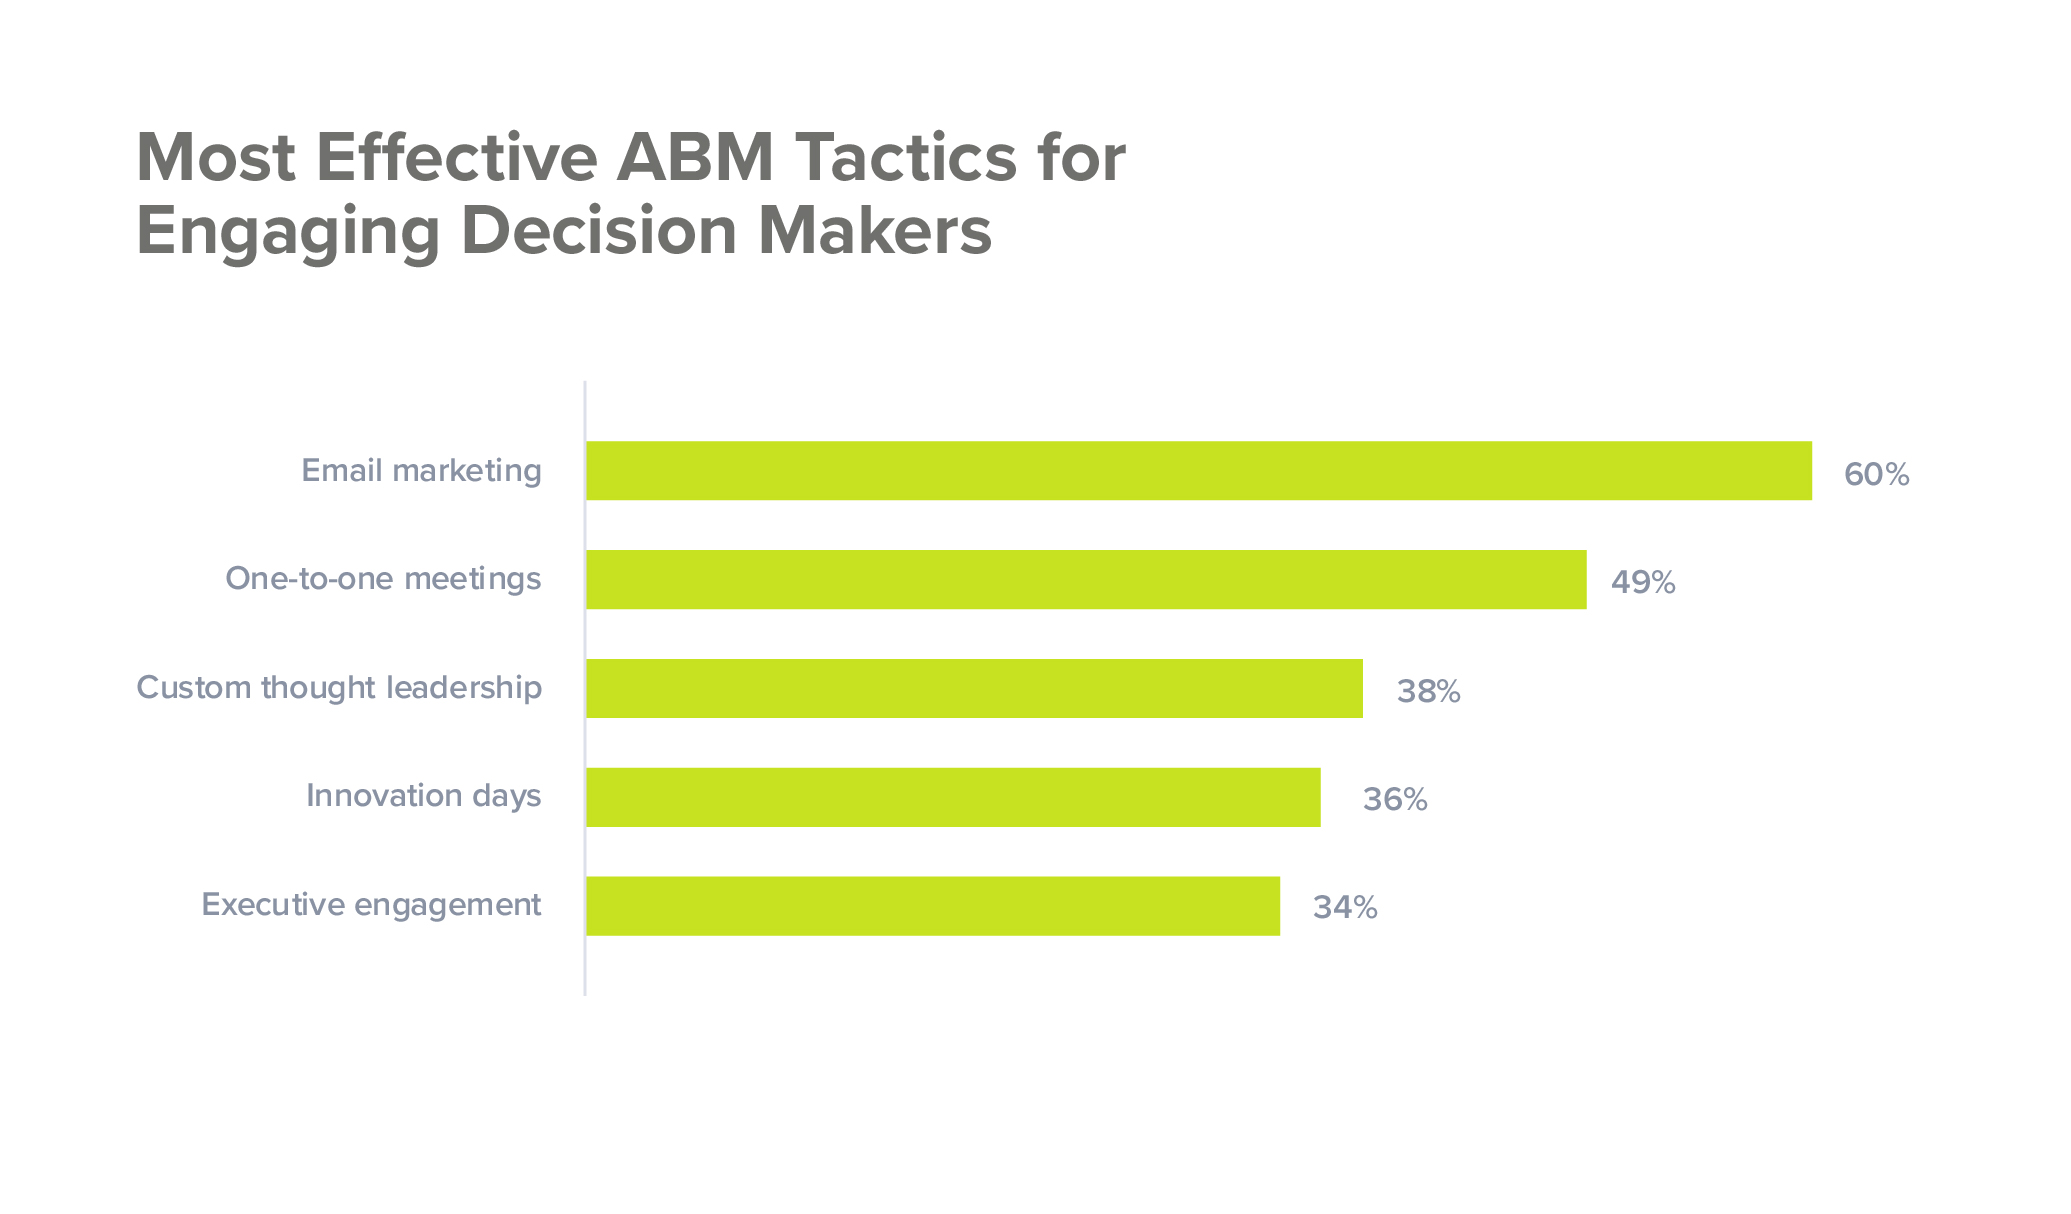 Most effective ABM tactics for engaging decision makers